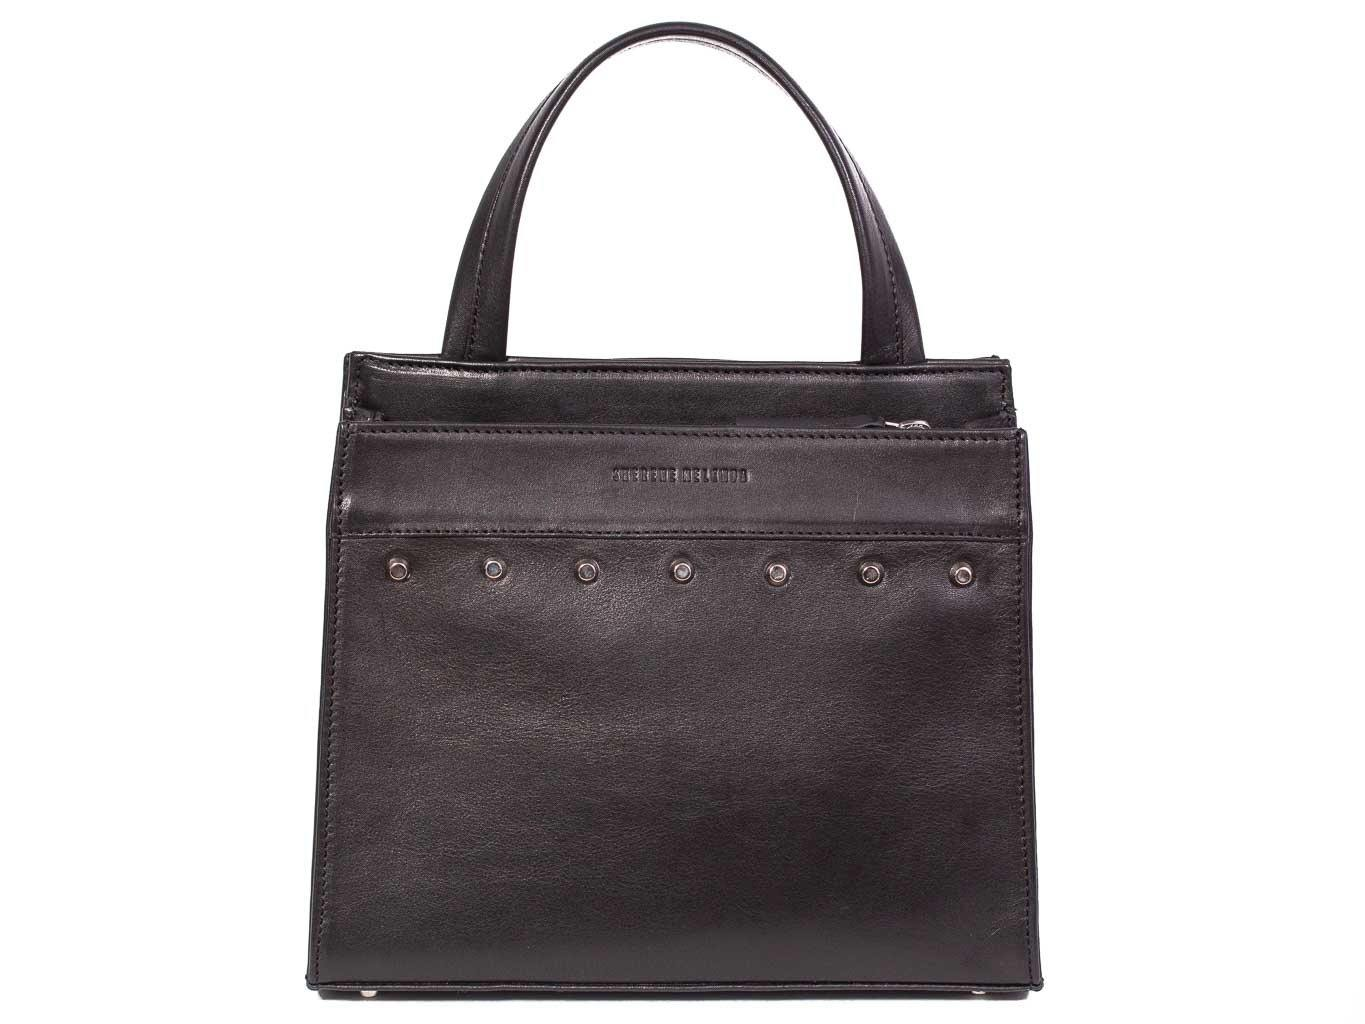 Top Handle Studded Handbag in Black by Sherene Melinda